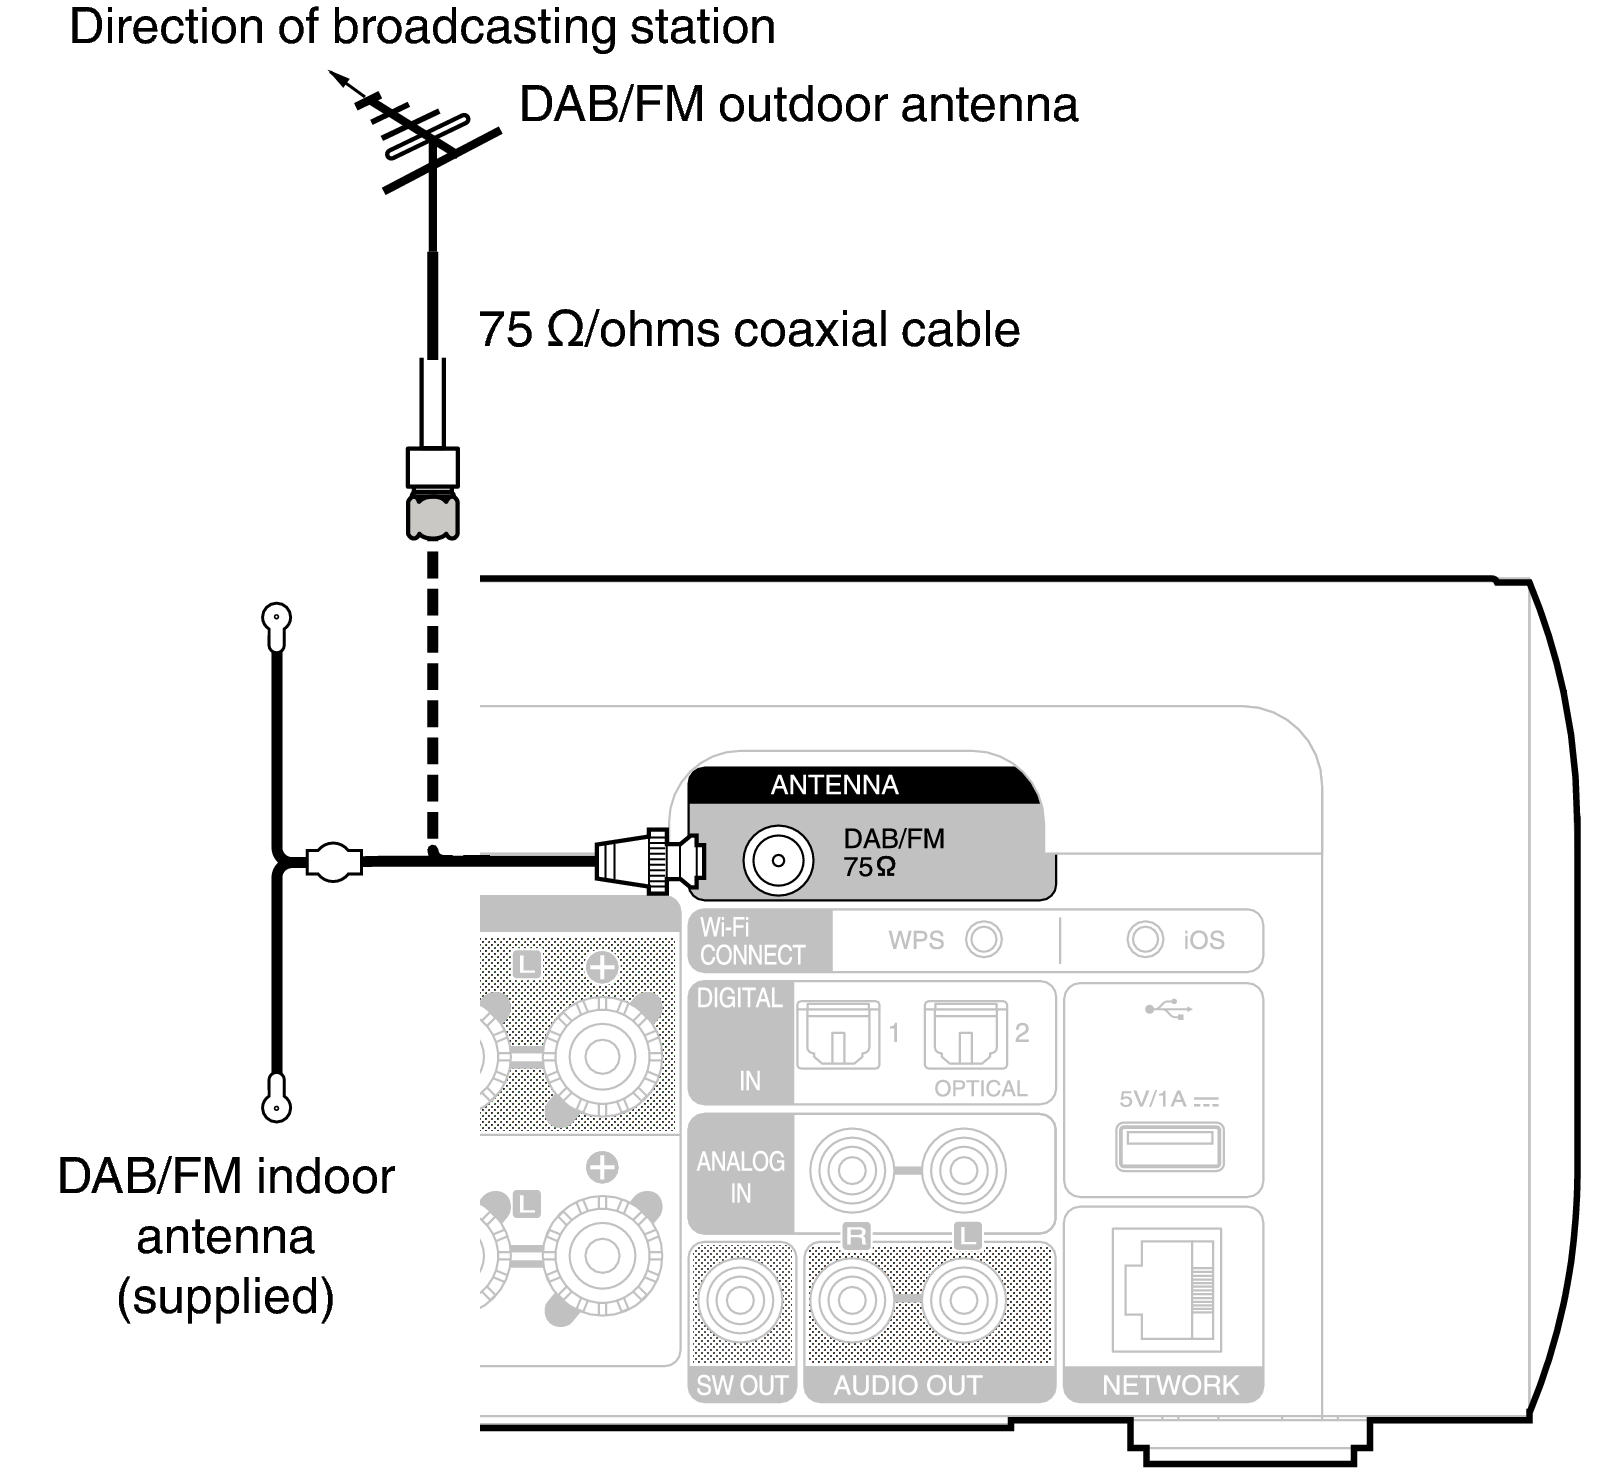 Conne MCR611 DAB FM_DRDZILqwegezpd connecting a dab fm antenna m cr611 USB Power Wiring Diagram at aneh.co